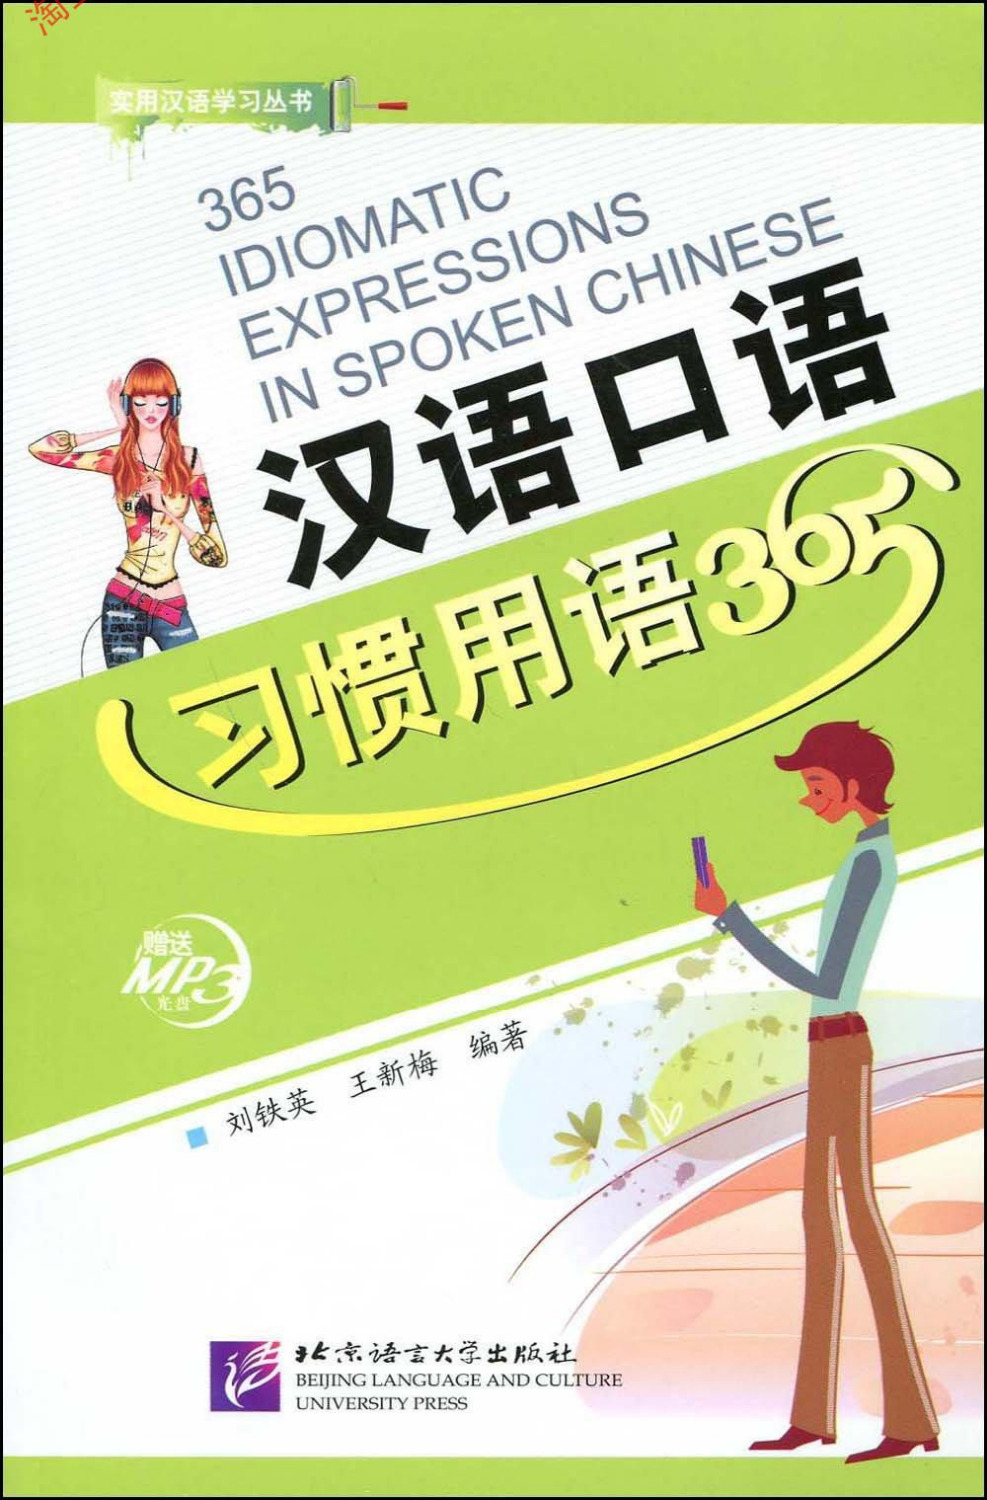 365 Idiomatic Expressions In Spoken Chinese With 1 CD (Chinese Edition)